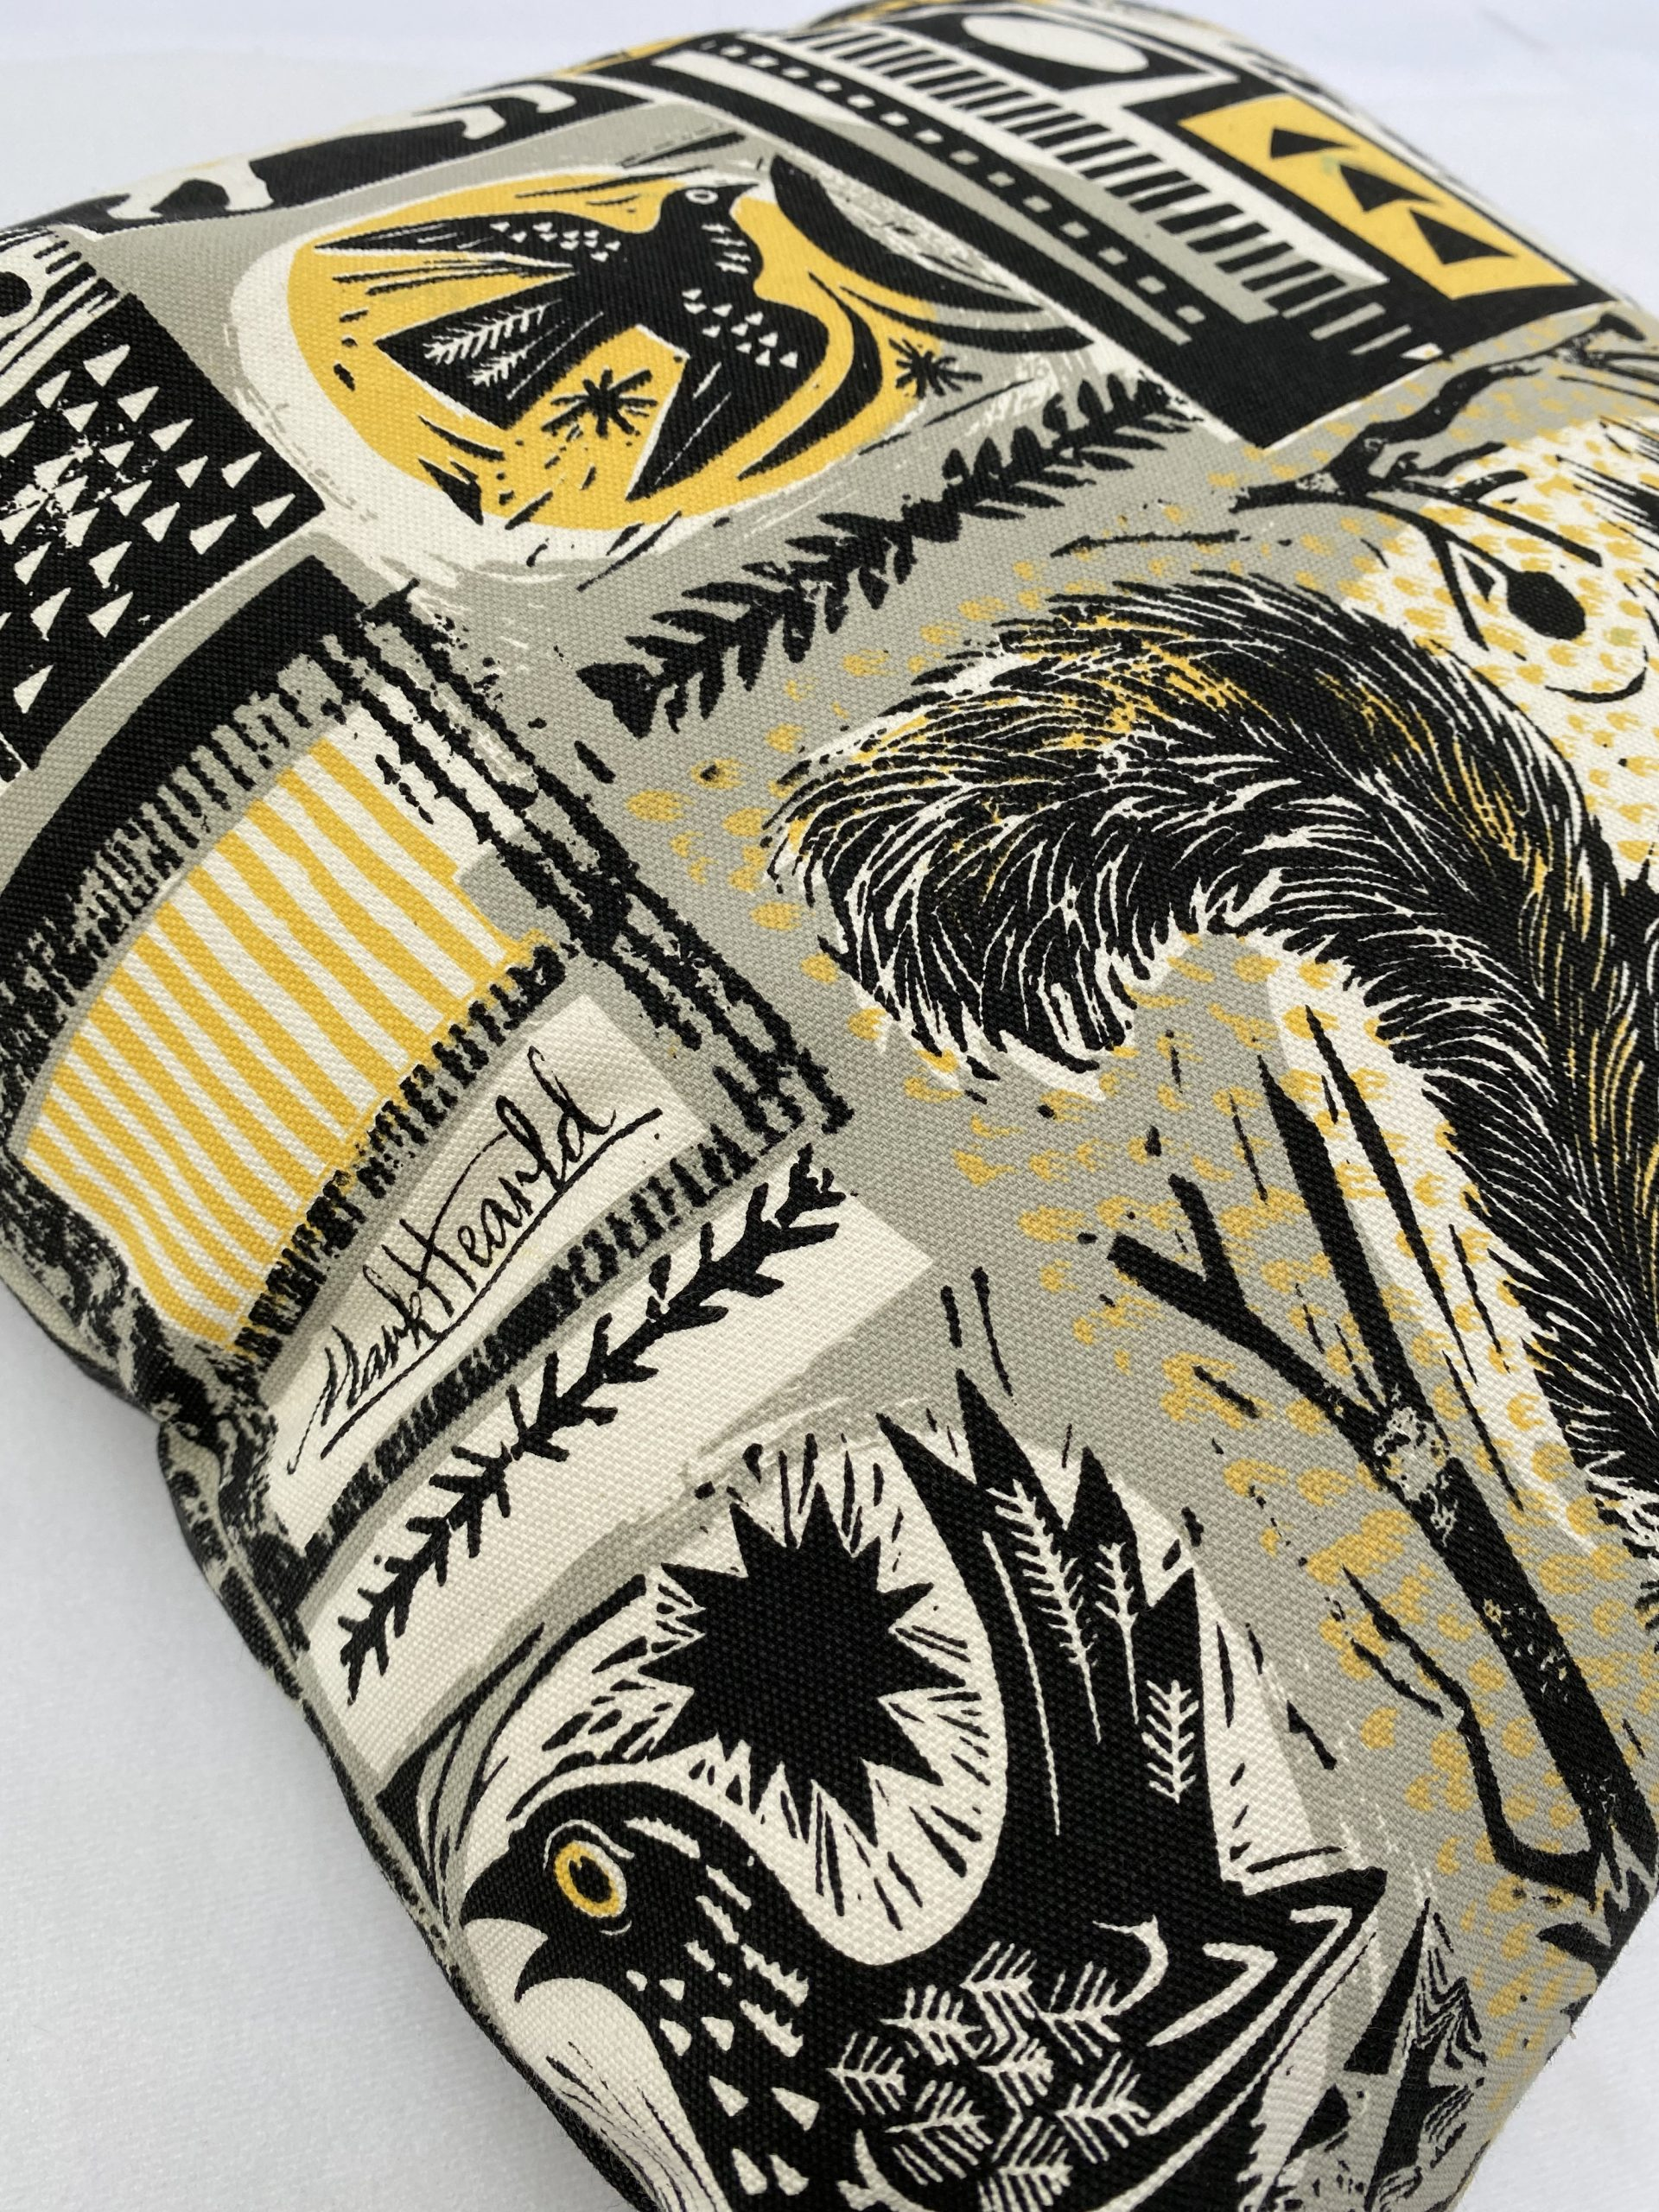 UK screen printed and made merchandise including cushion cover by Pul Bristow designed by Mark Herald for Tate